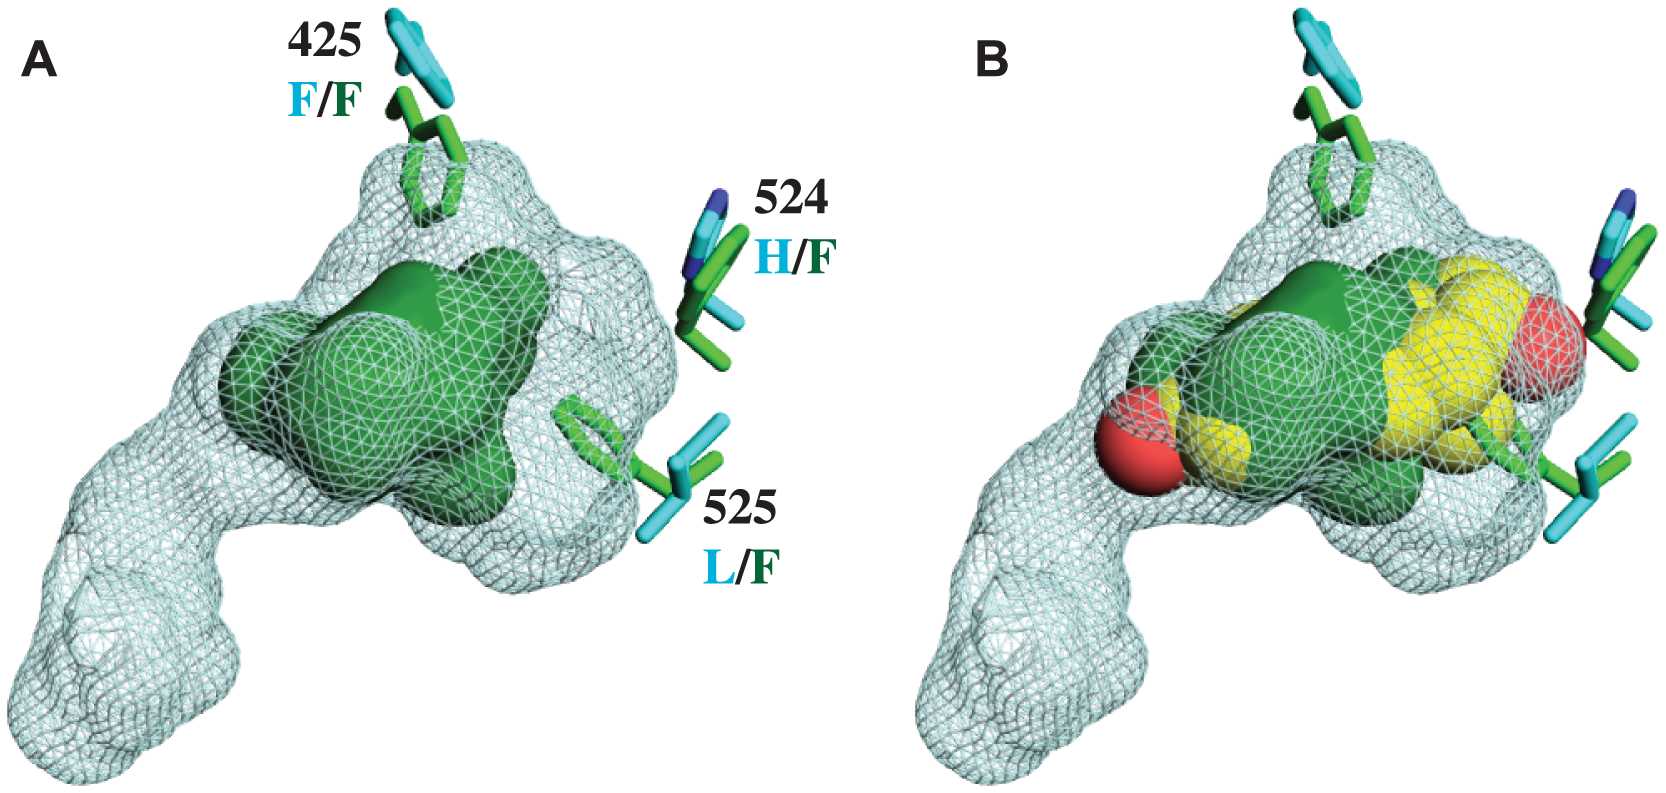 CgER ligand binding pocket is too small to accommodate estradiol.